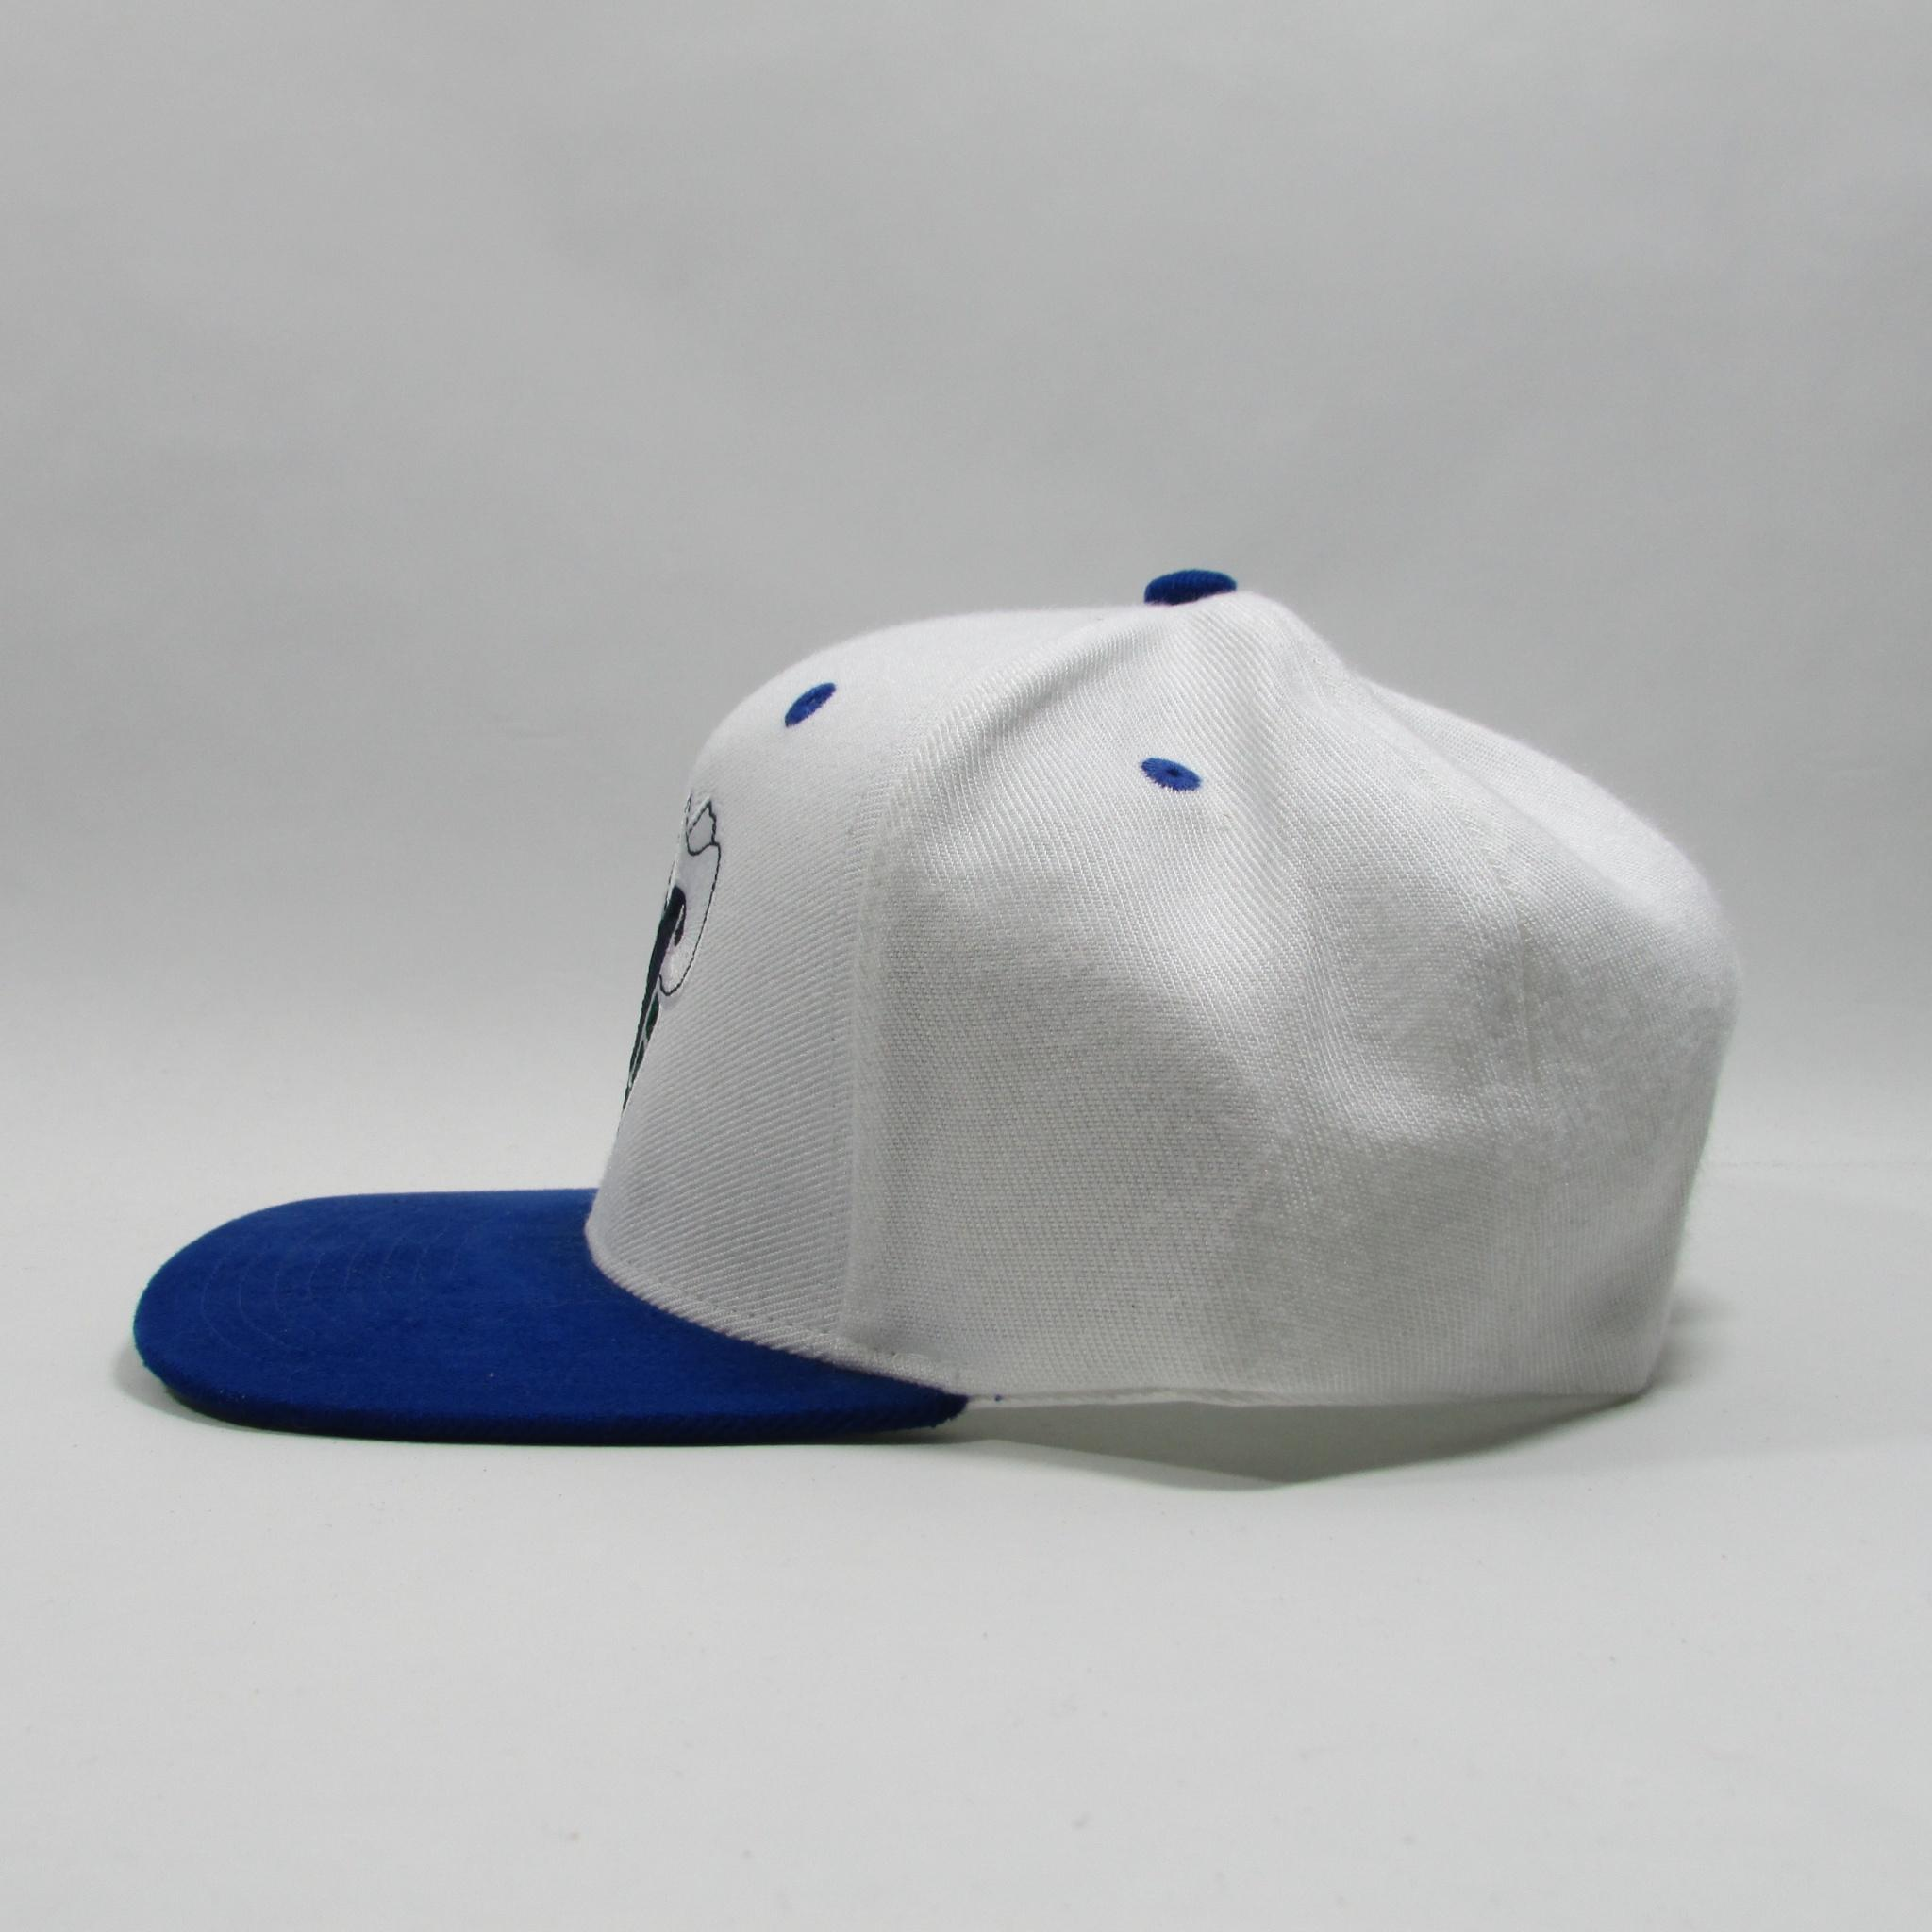 Dallas Mavericks Vintage 1993 Basketball Logo Snapback Hat